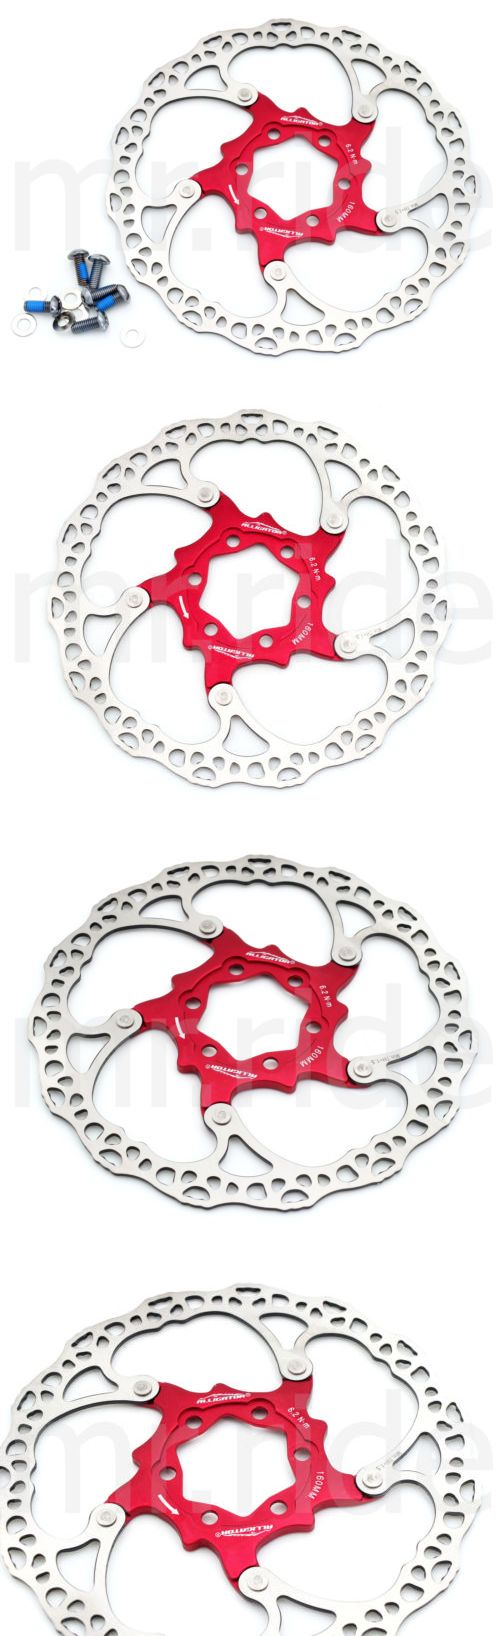 Brake Rotors 177807: High Grade Alligator Floating Disc Brake Rotor 104G 160Mm Red BUY IT NOW ONLY: $32.5